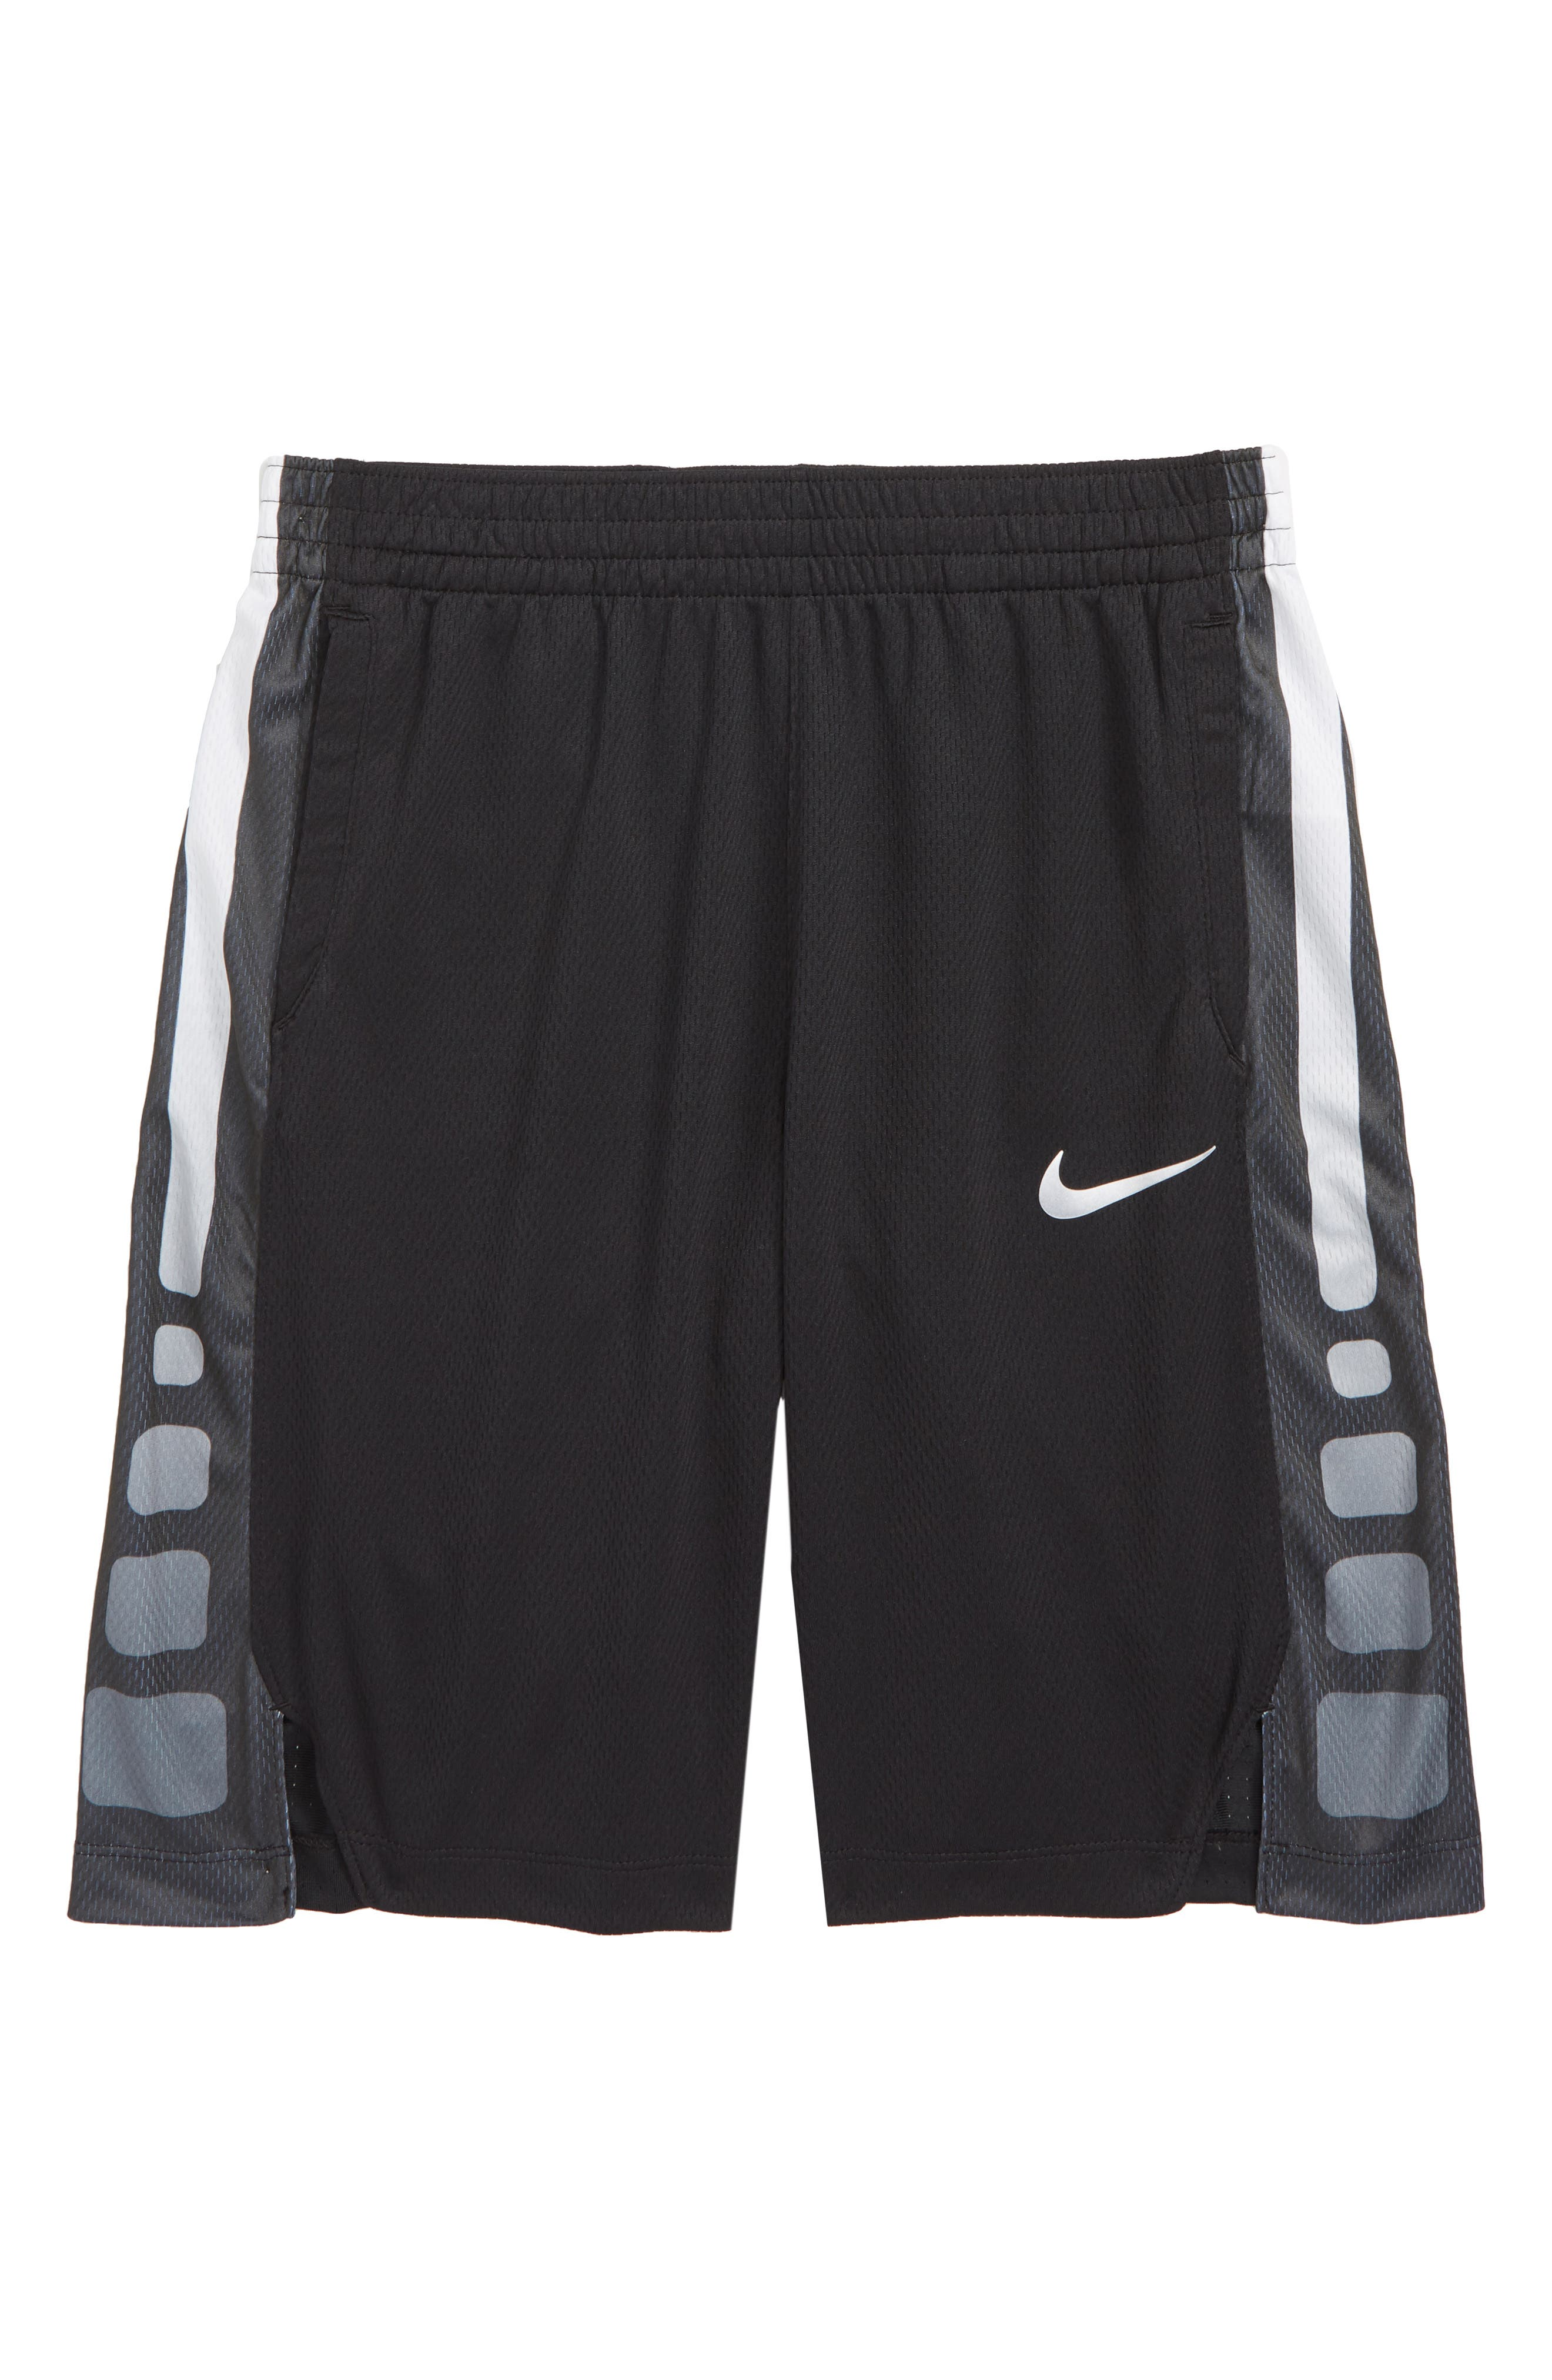 Dry Elite Basketball Shorts,                         Main,                         color, 015